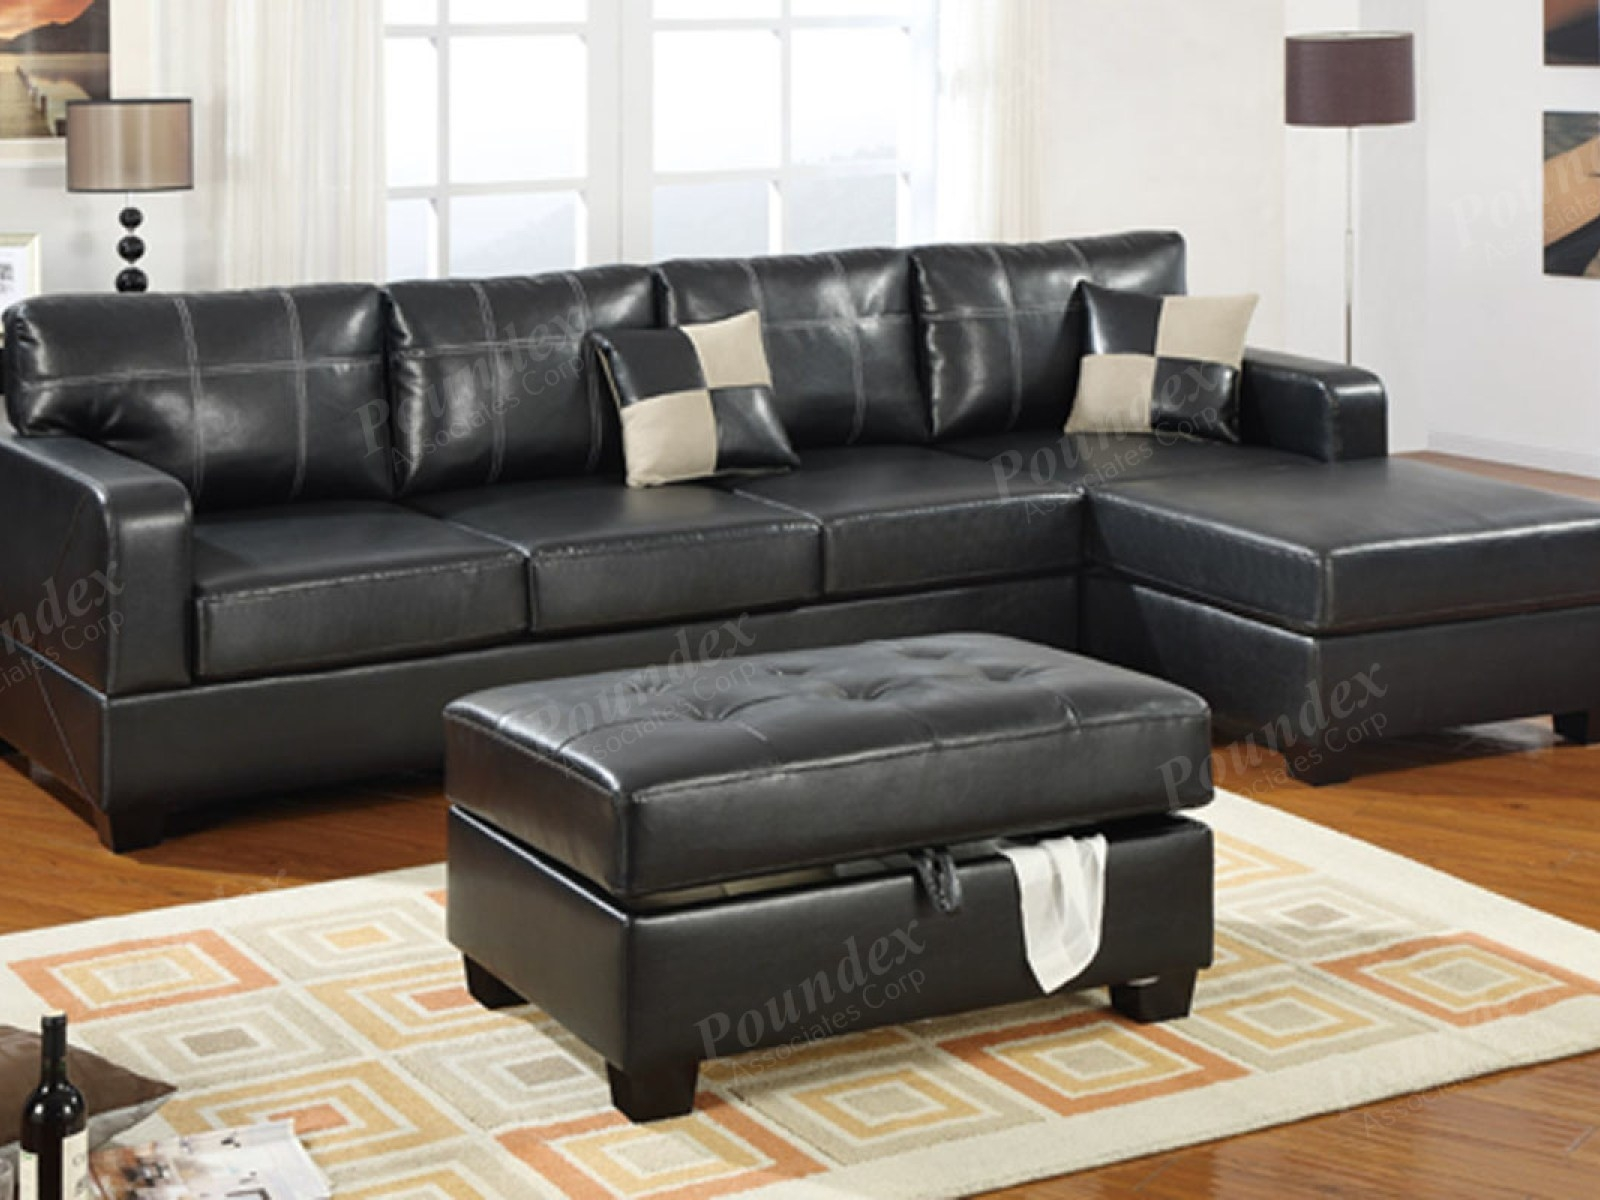 Sofa 19 Cute Sofa Craftsman Style Modern Single Leather Regarding Craftsman Sectional Sofa (Photo 13 of 15)